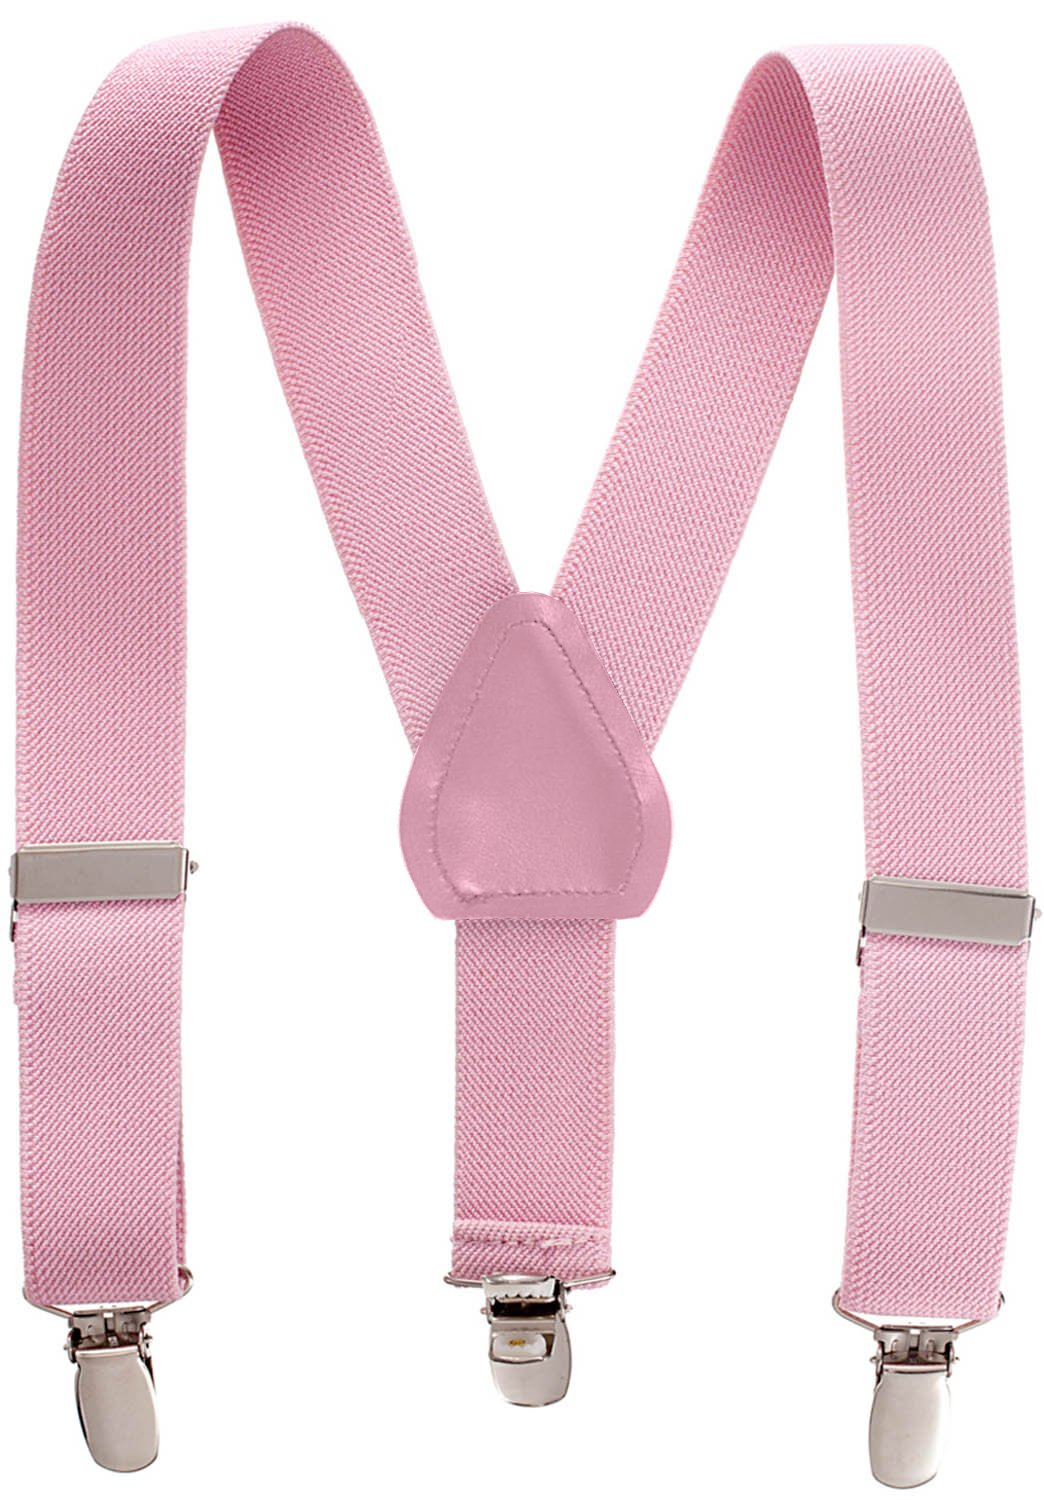 Suspenders for Kids - 1 Inch Suspender Perfect for Tuxedo - Light Pink (30'')